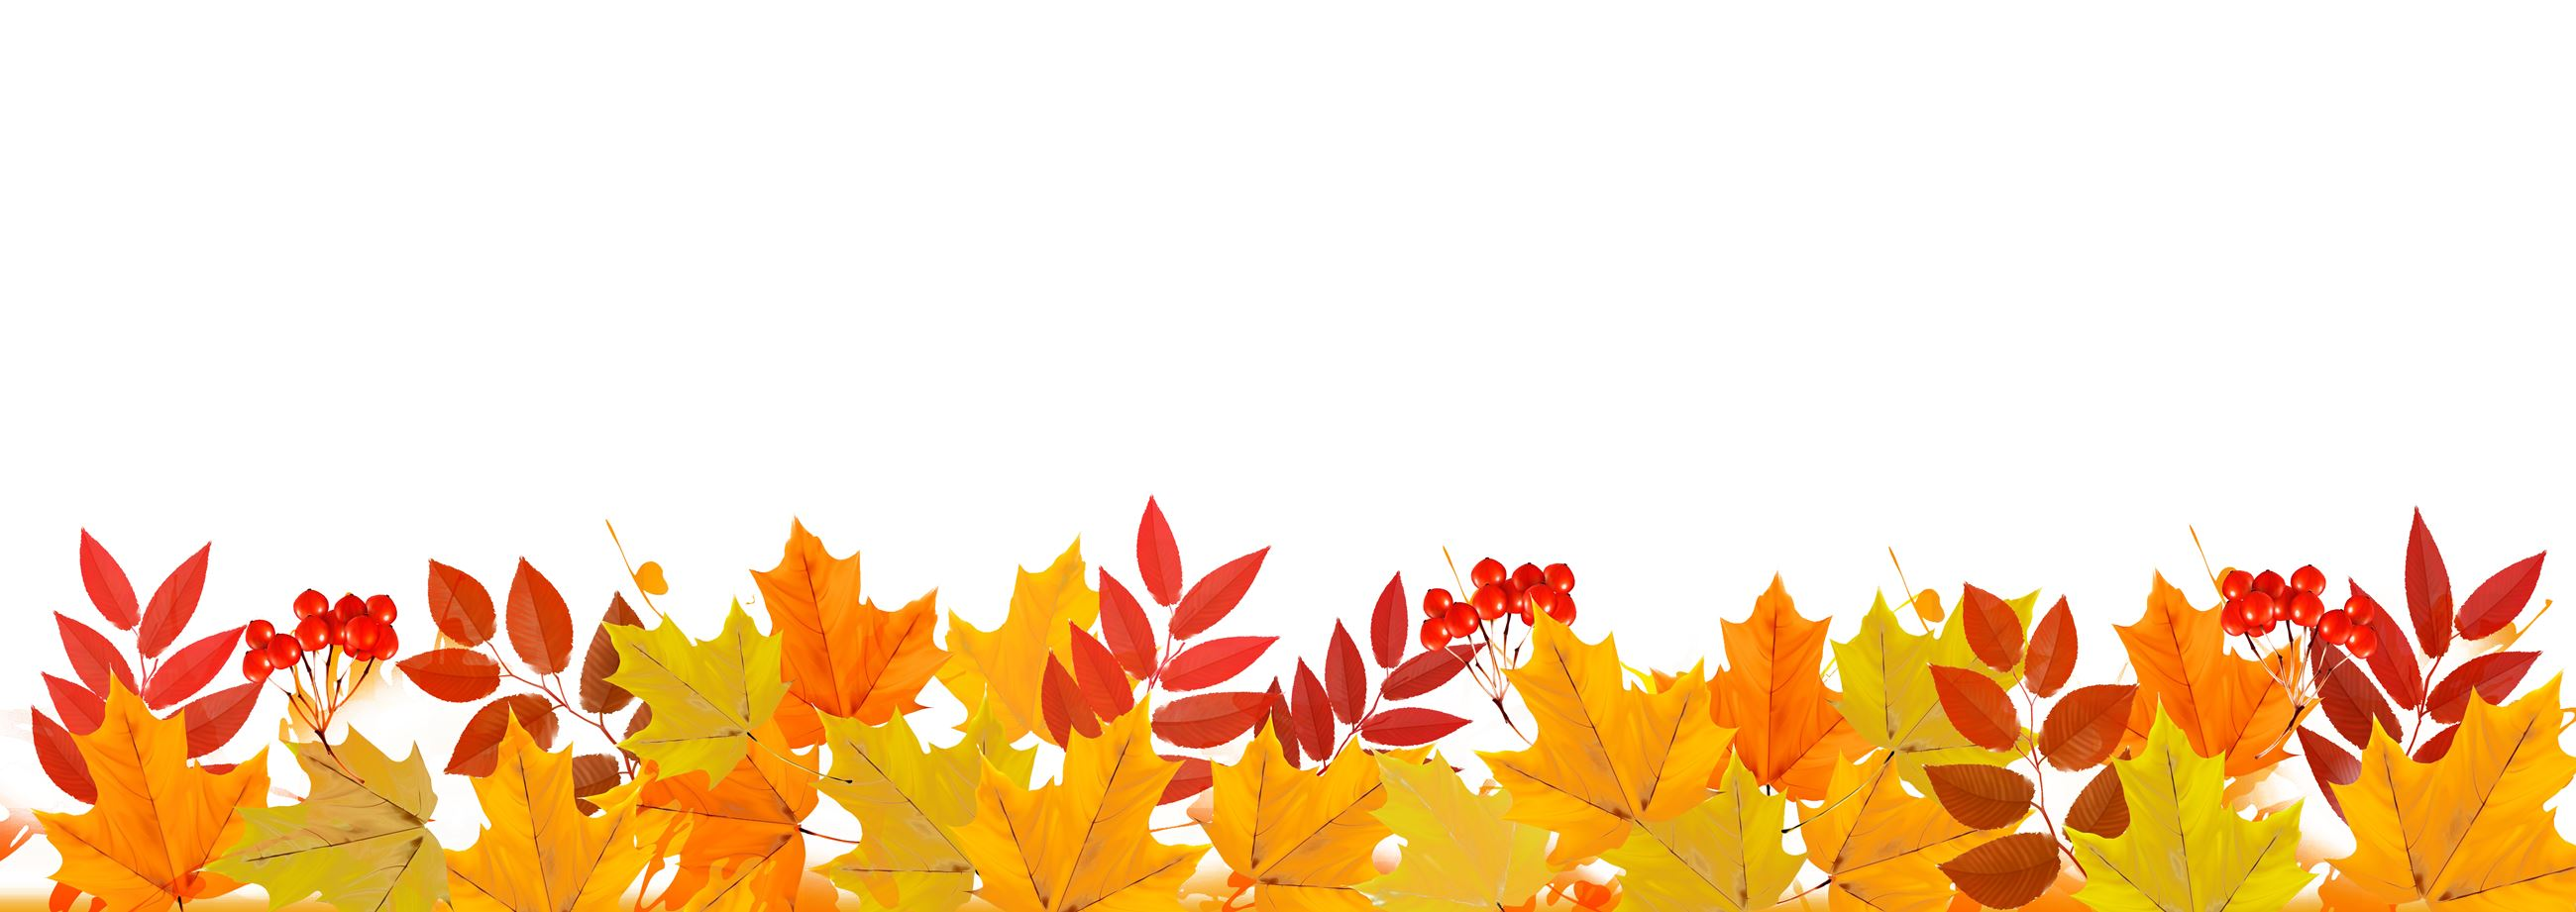 Leaves Banner Background2